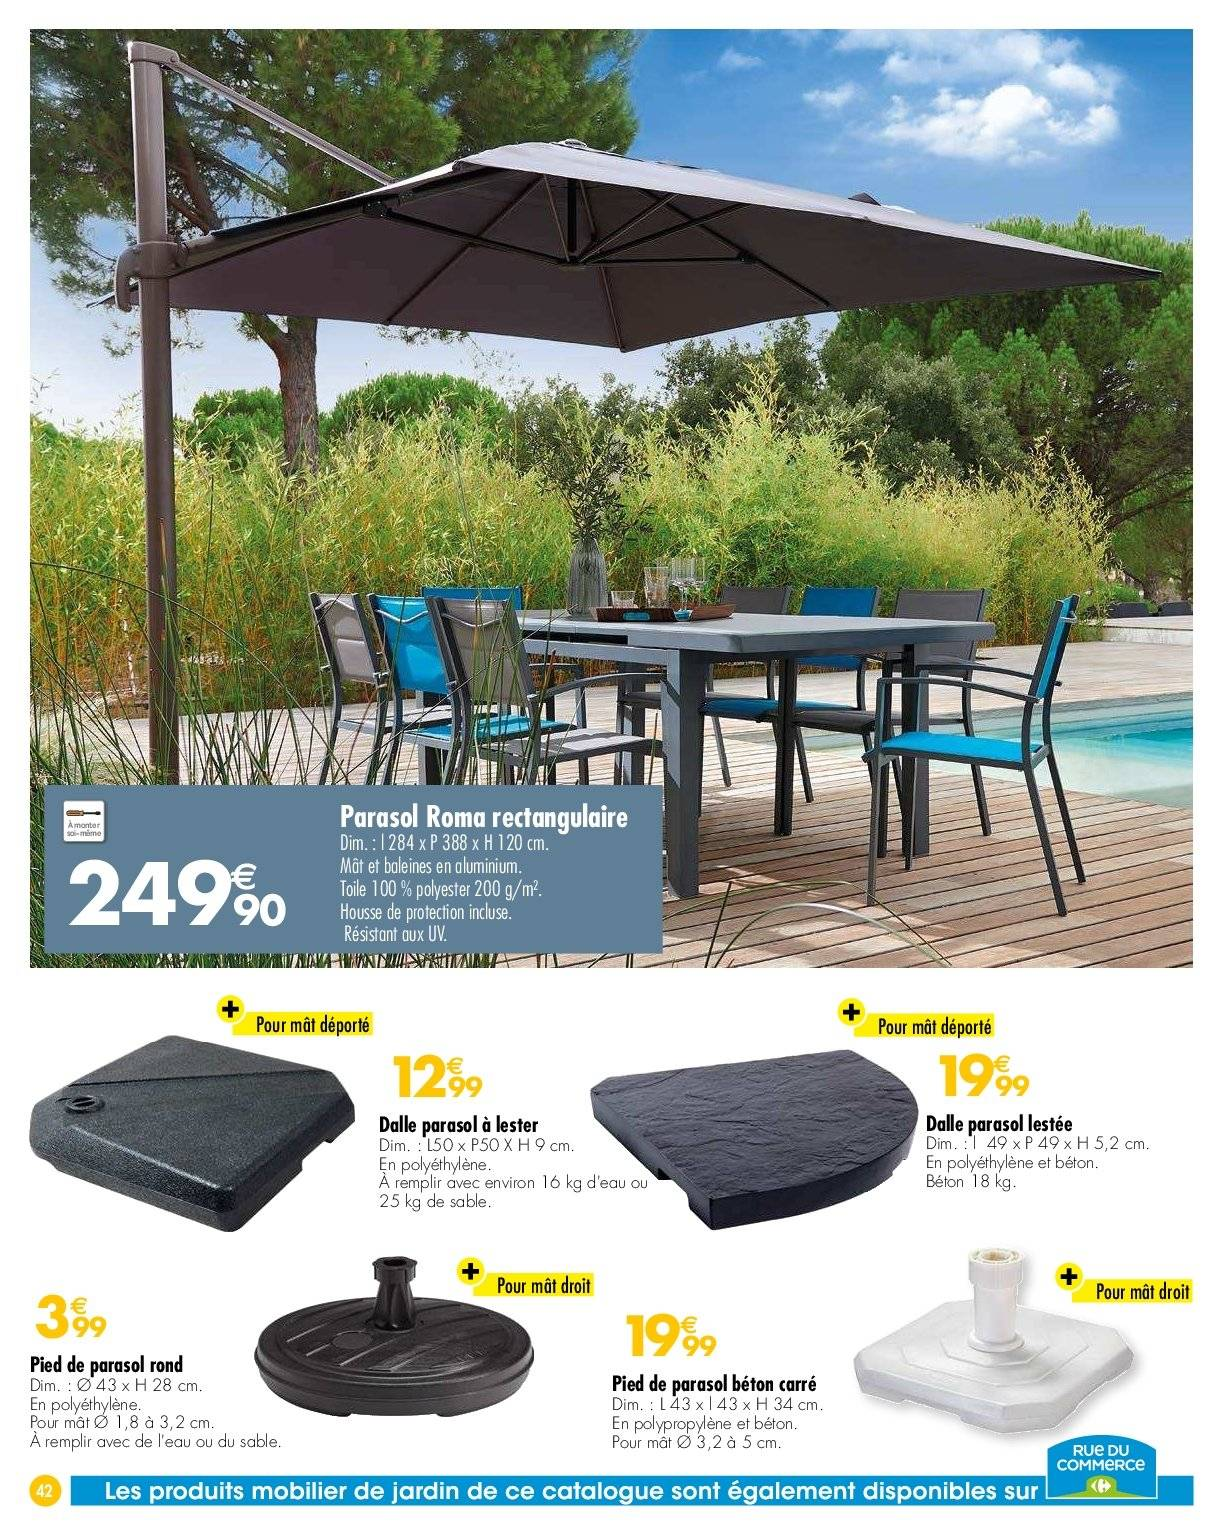 Table Pliante Carrefour Nouveau Dalle Bois Terrasse Carrefour Of 21 Luxe Table Pliante Carrefour